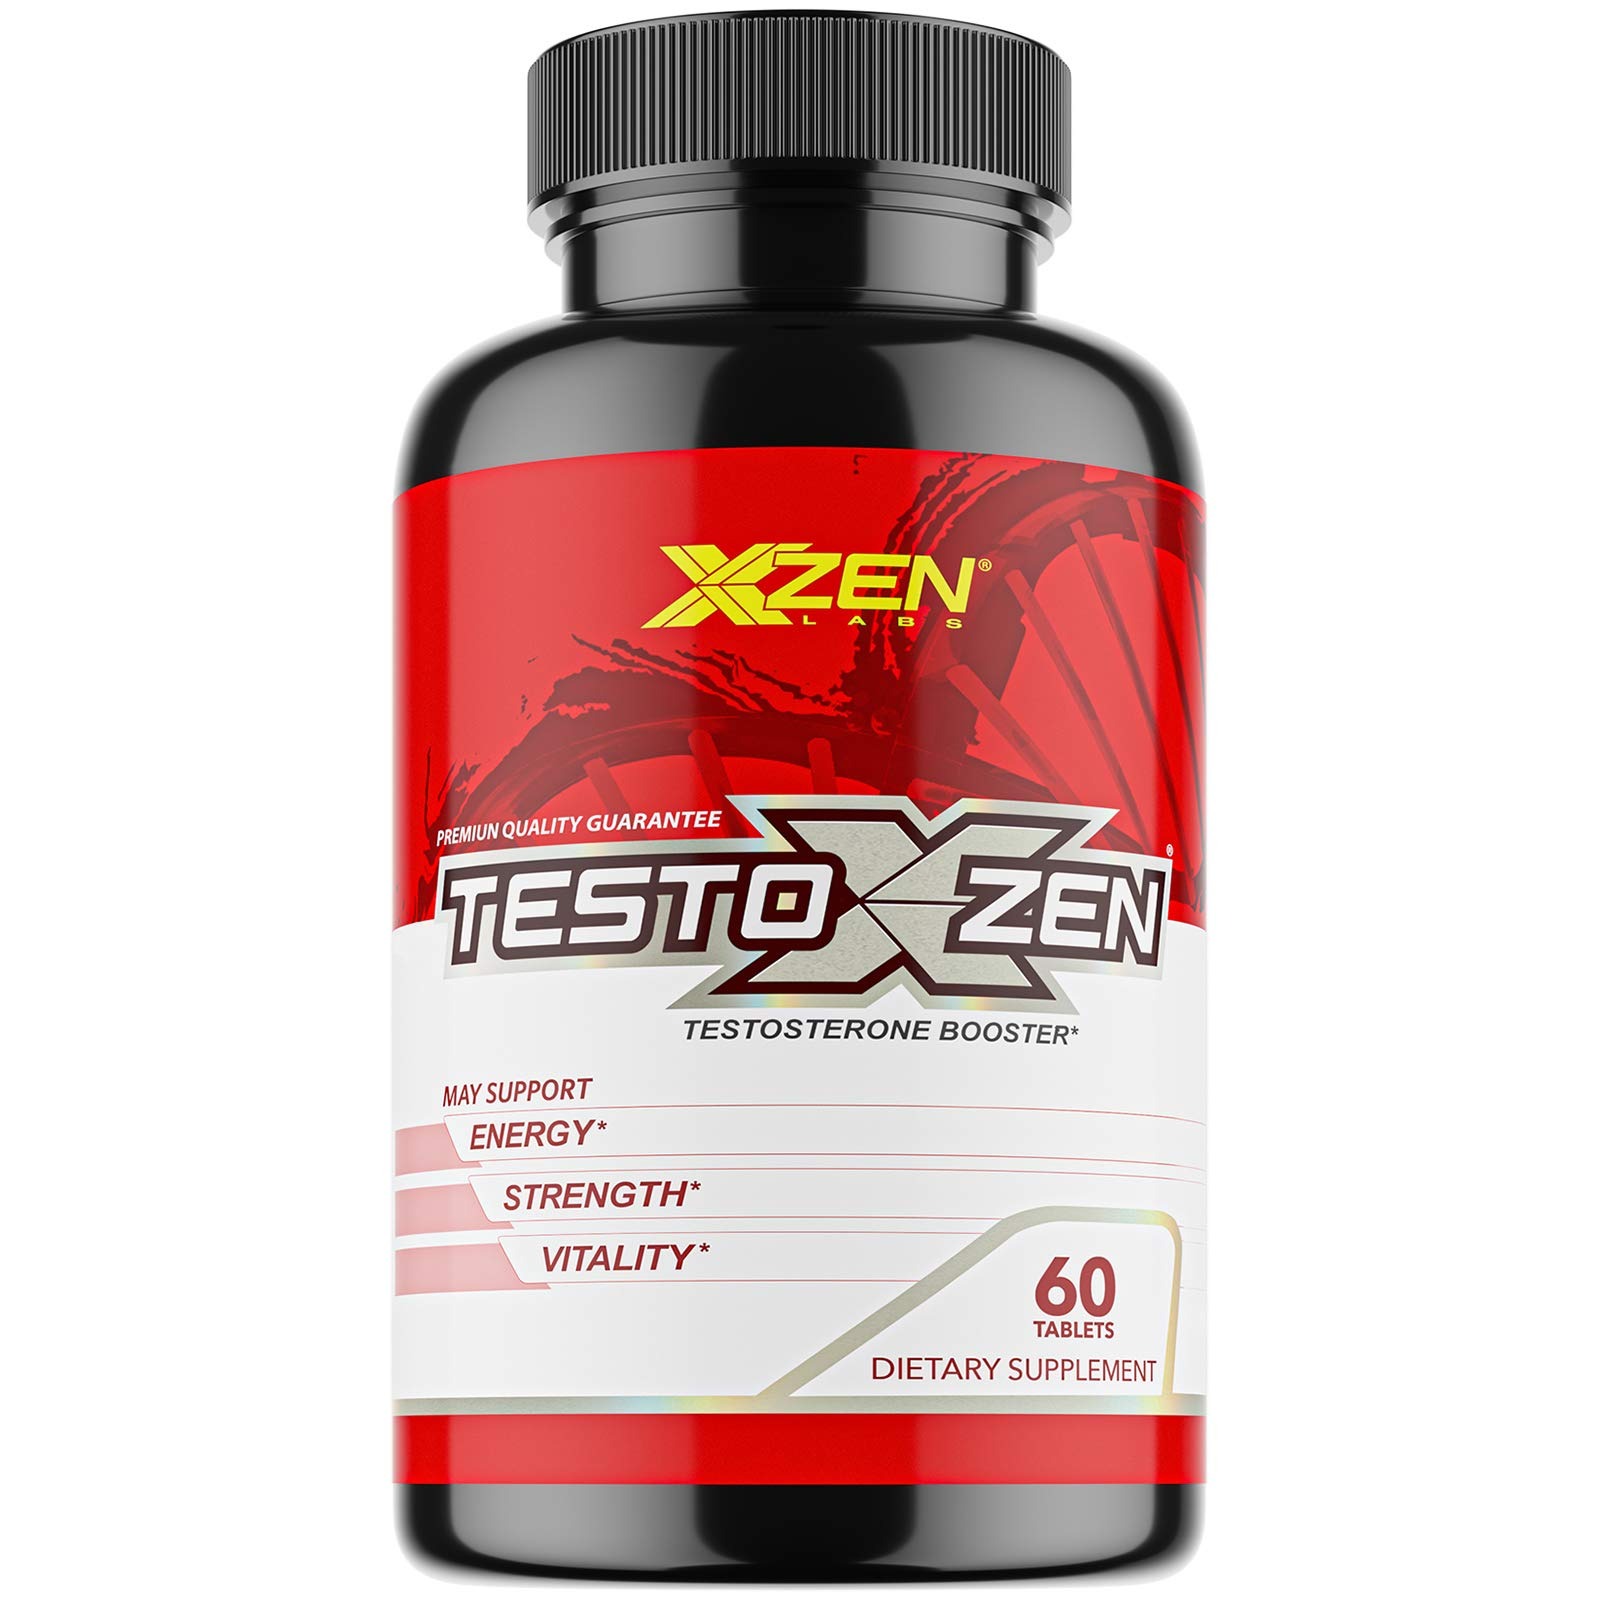 XZEN Testoxzen Testosterone Booster for Men - Premium Natural Dietary Pills for Energy, Strength and Muscle Builder Supplement, 60 Tablets